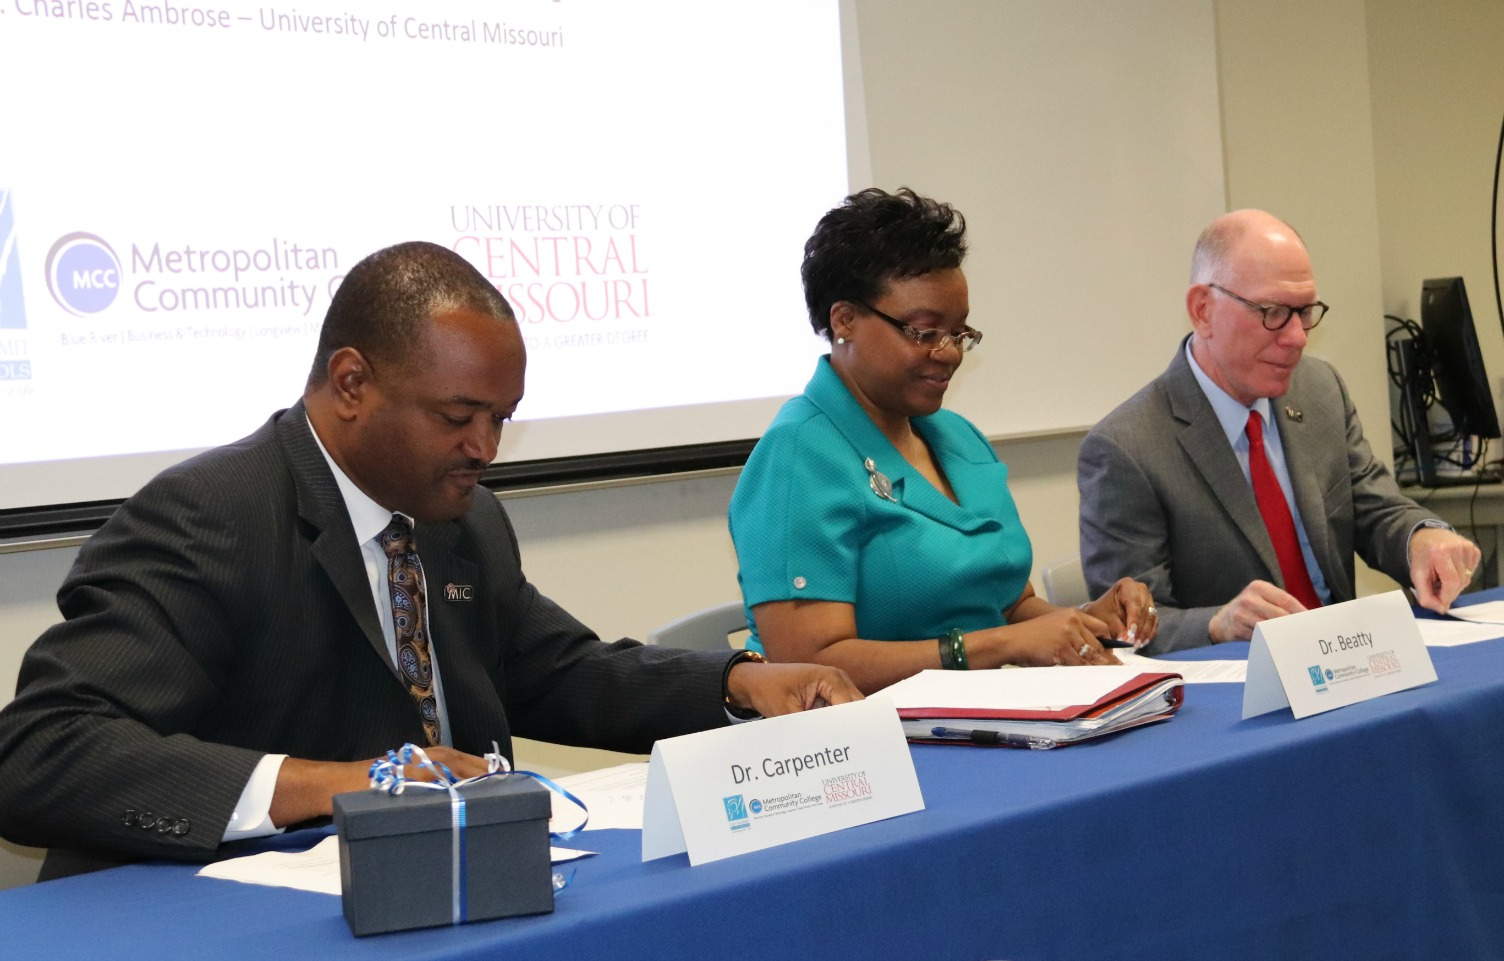 Signing the memorandum of understanding are (from left) Dr. Carpenter, Dr. Beatty and Dr. Ambrose.